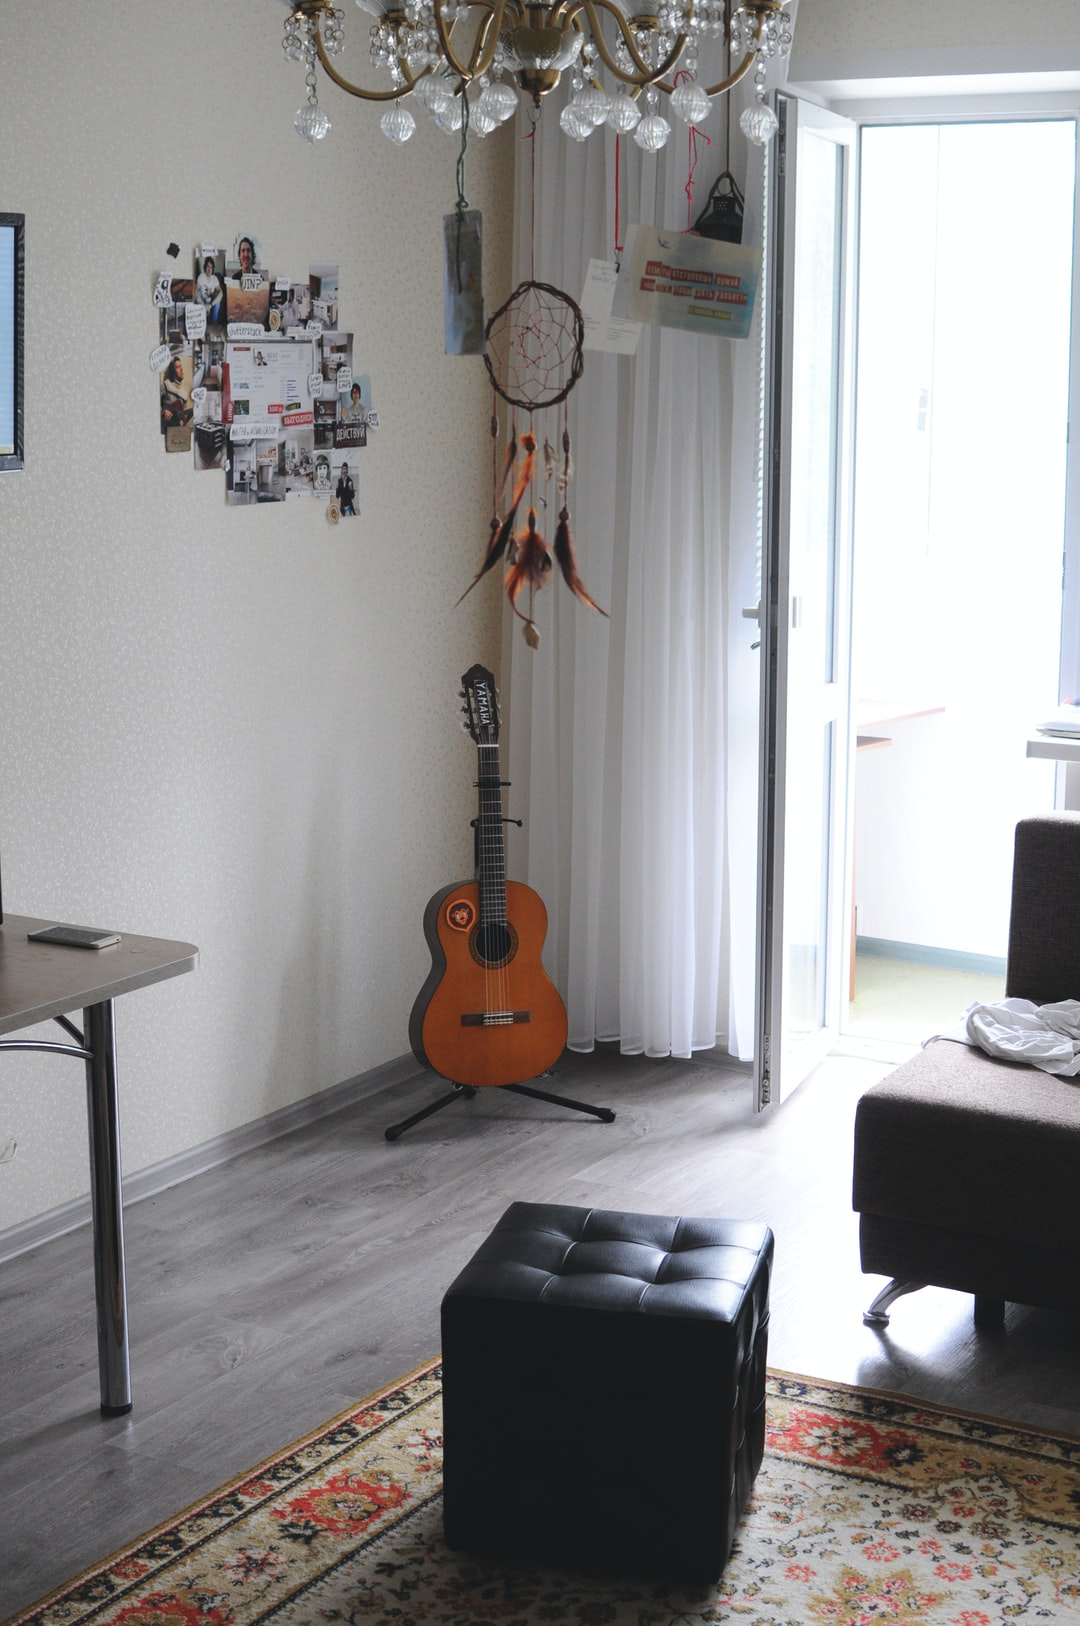 Summer room on a bright day in the apartment of a musician.